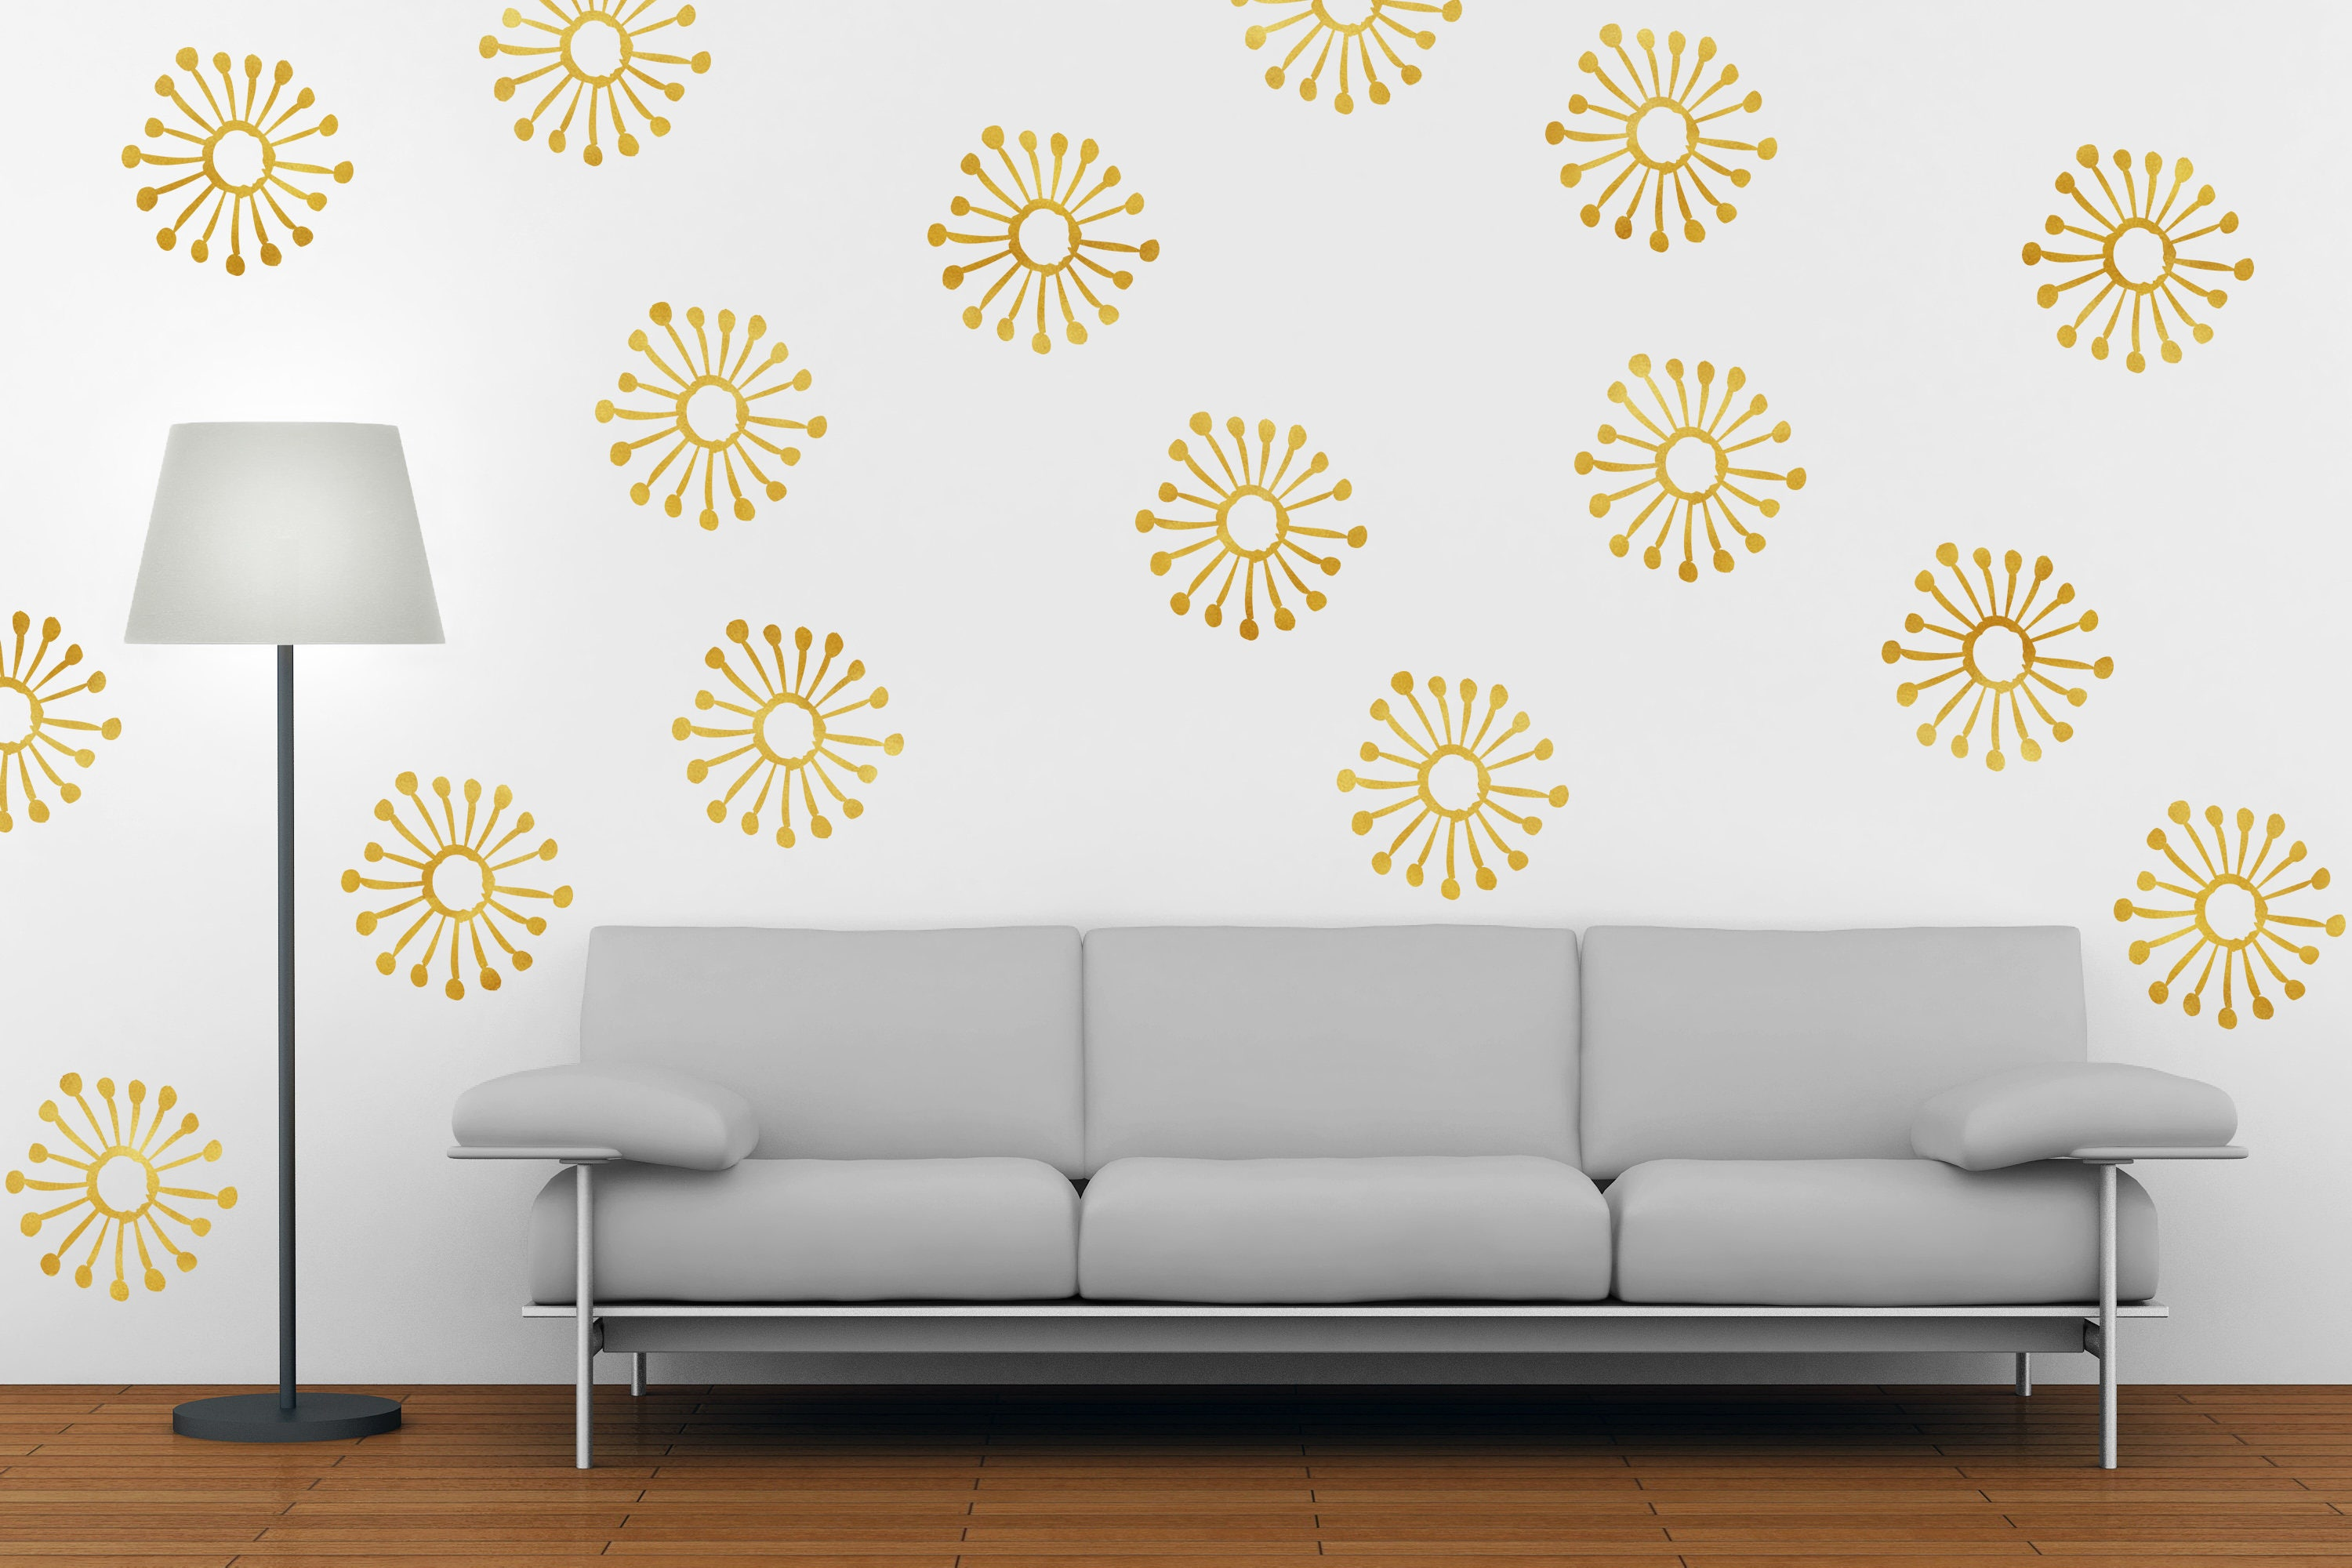 Dandelion Wall Decal   Dandelion Wall Decor   Vinyl Wall Decal   Dandelion    DandelionDecals   Home Decor  Dandelion Wall Art